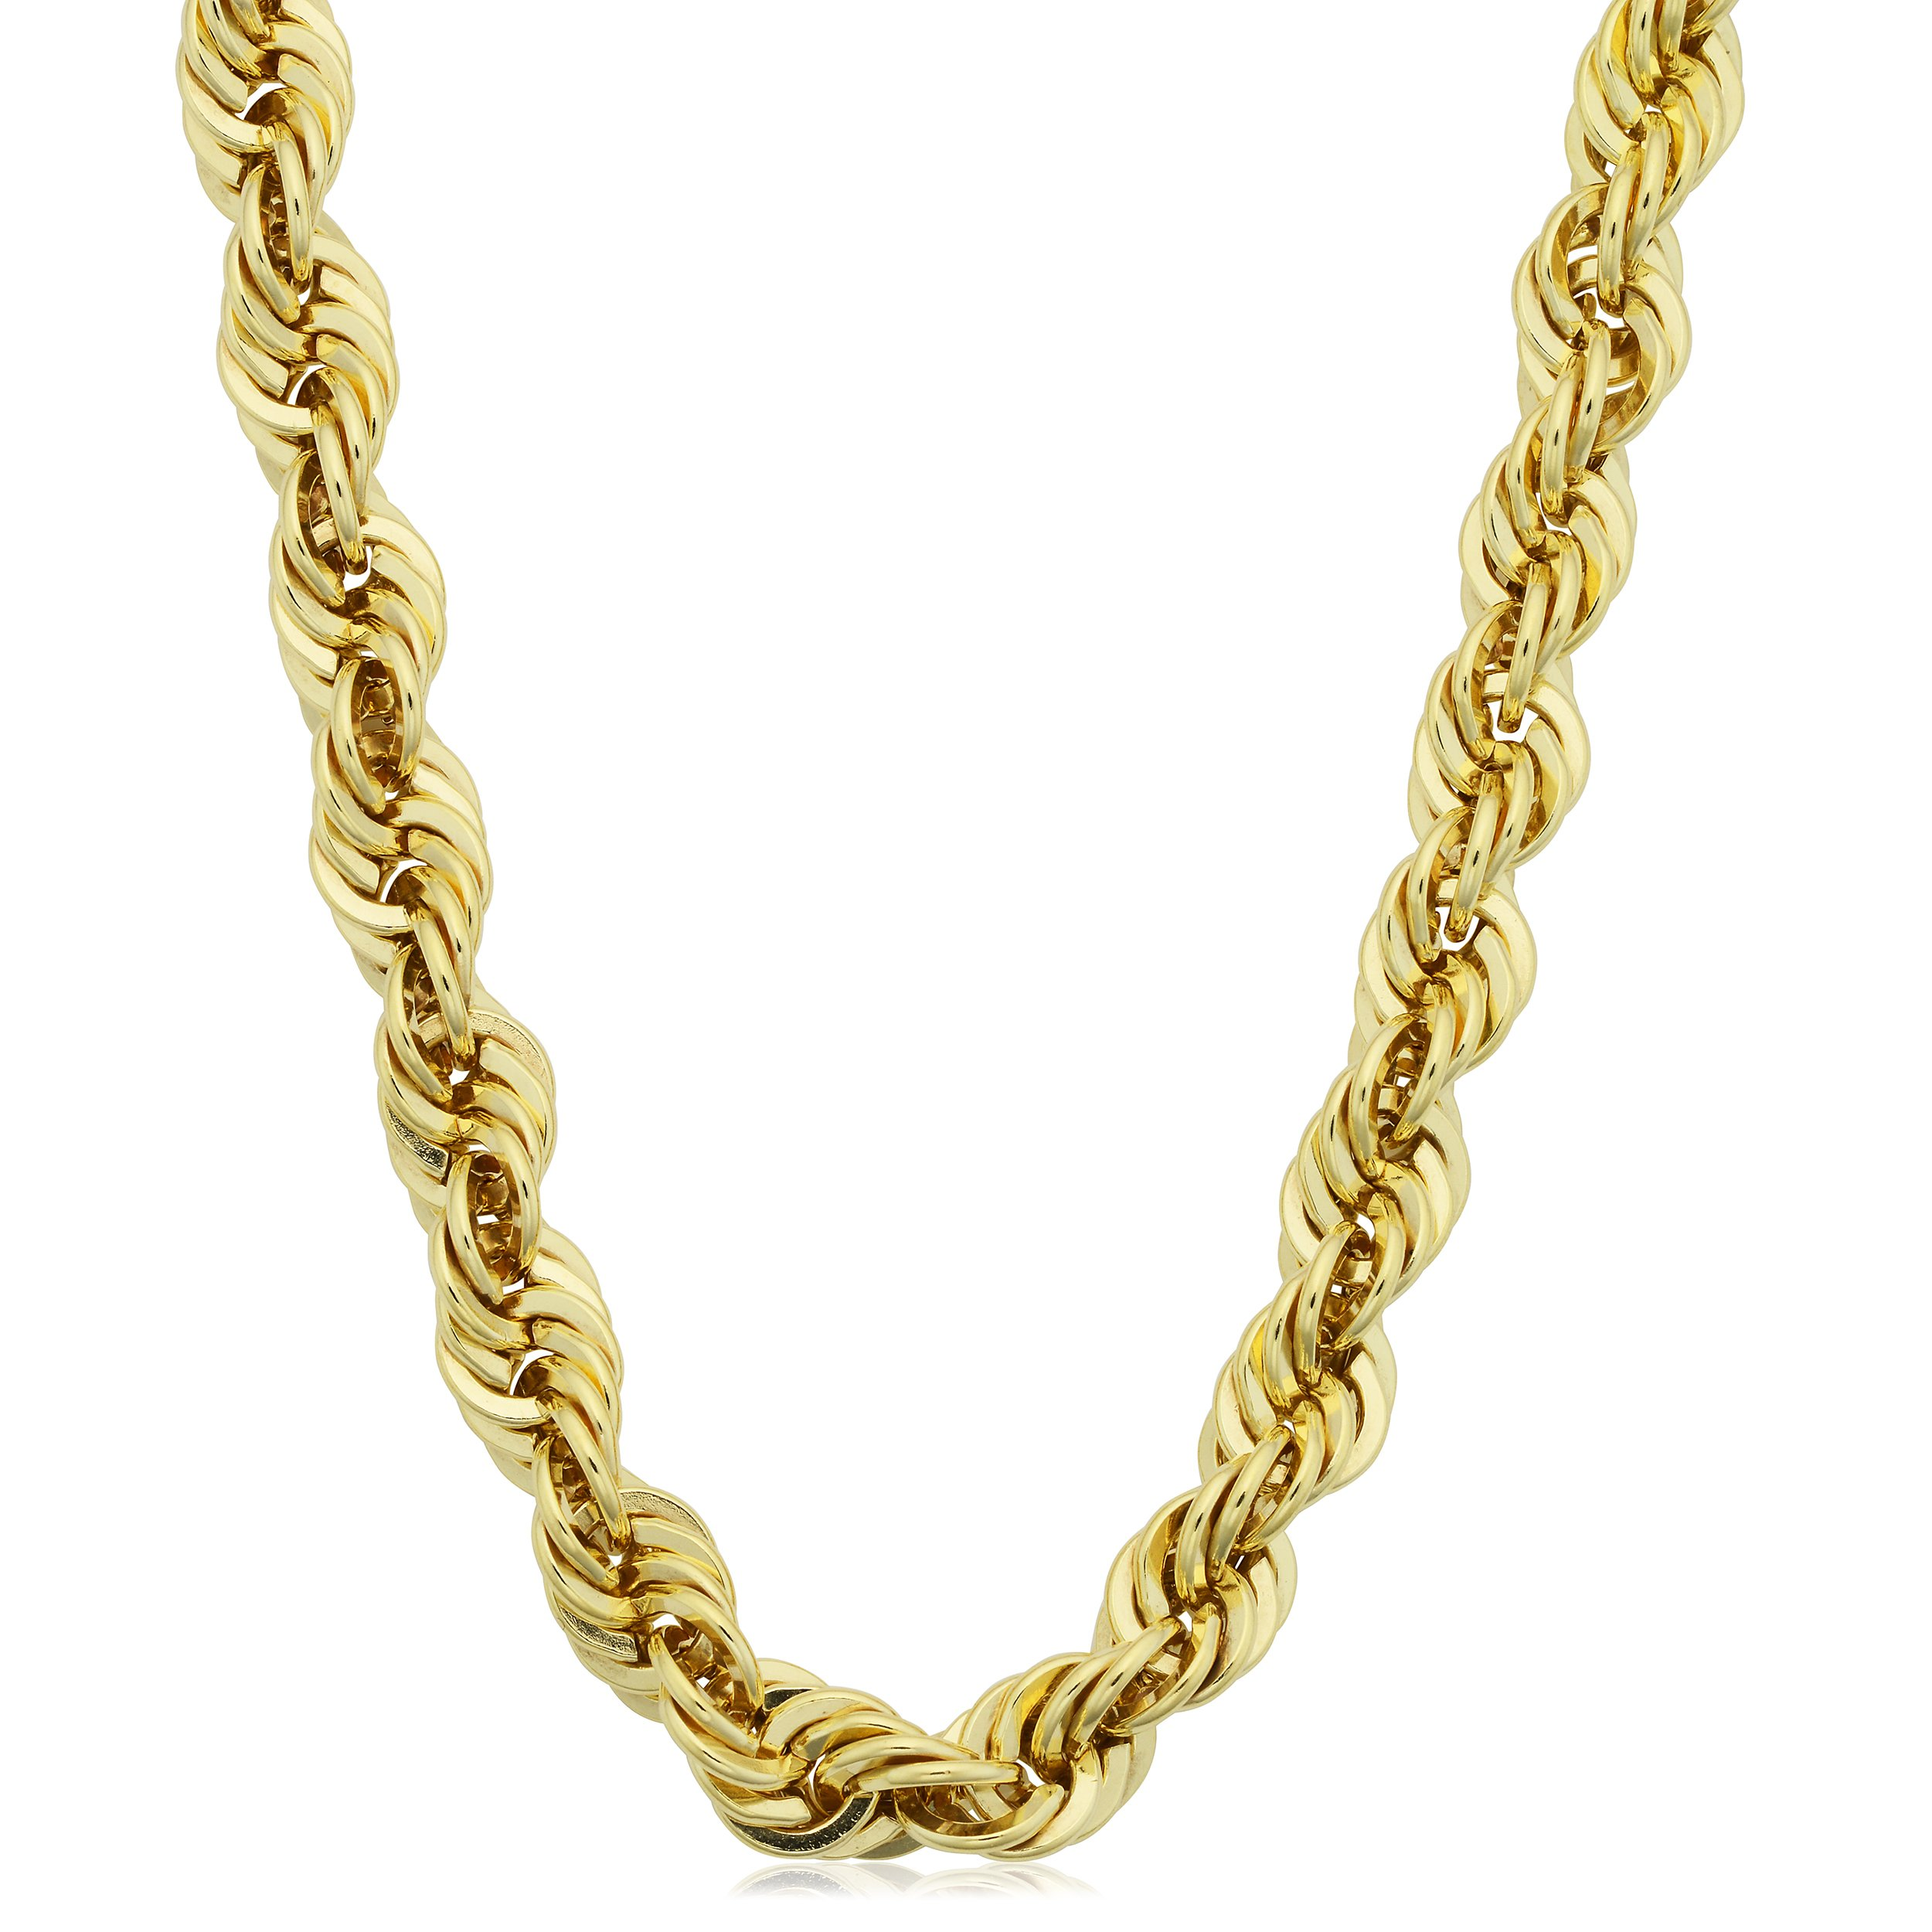 Kooljewelry Mens 14k Yellow Gold Filled Bold Rope Chain Necklace (6mm, 30 inch)